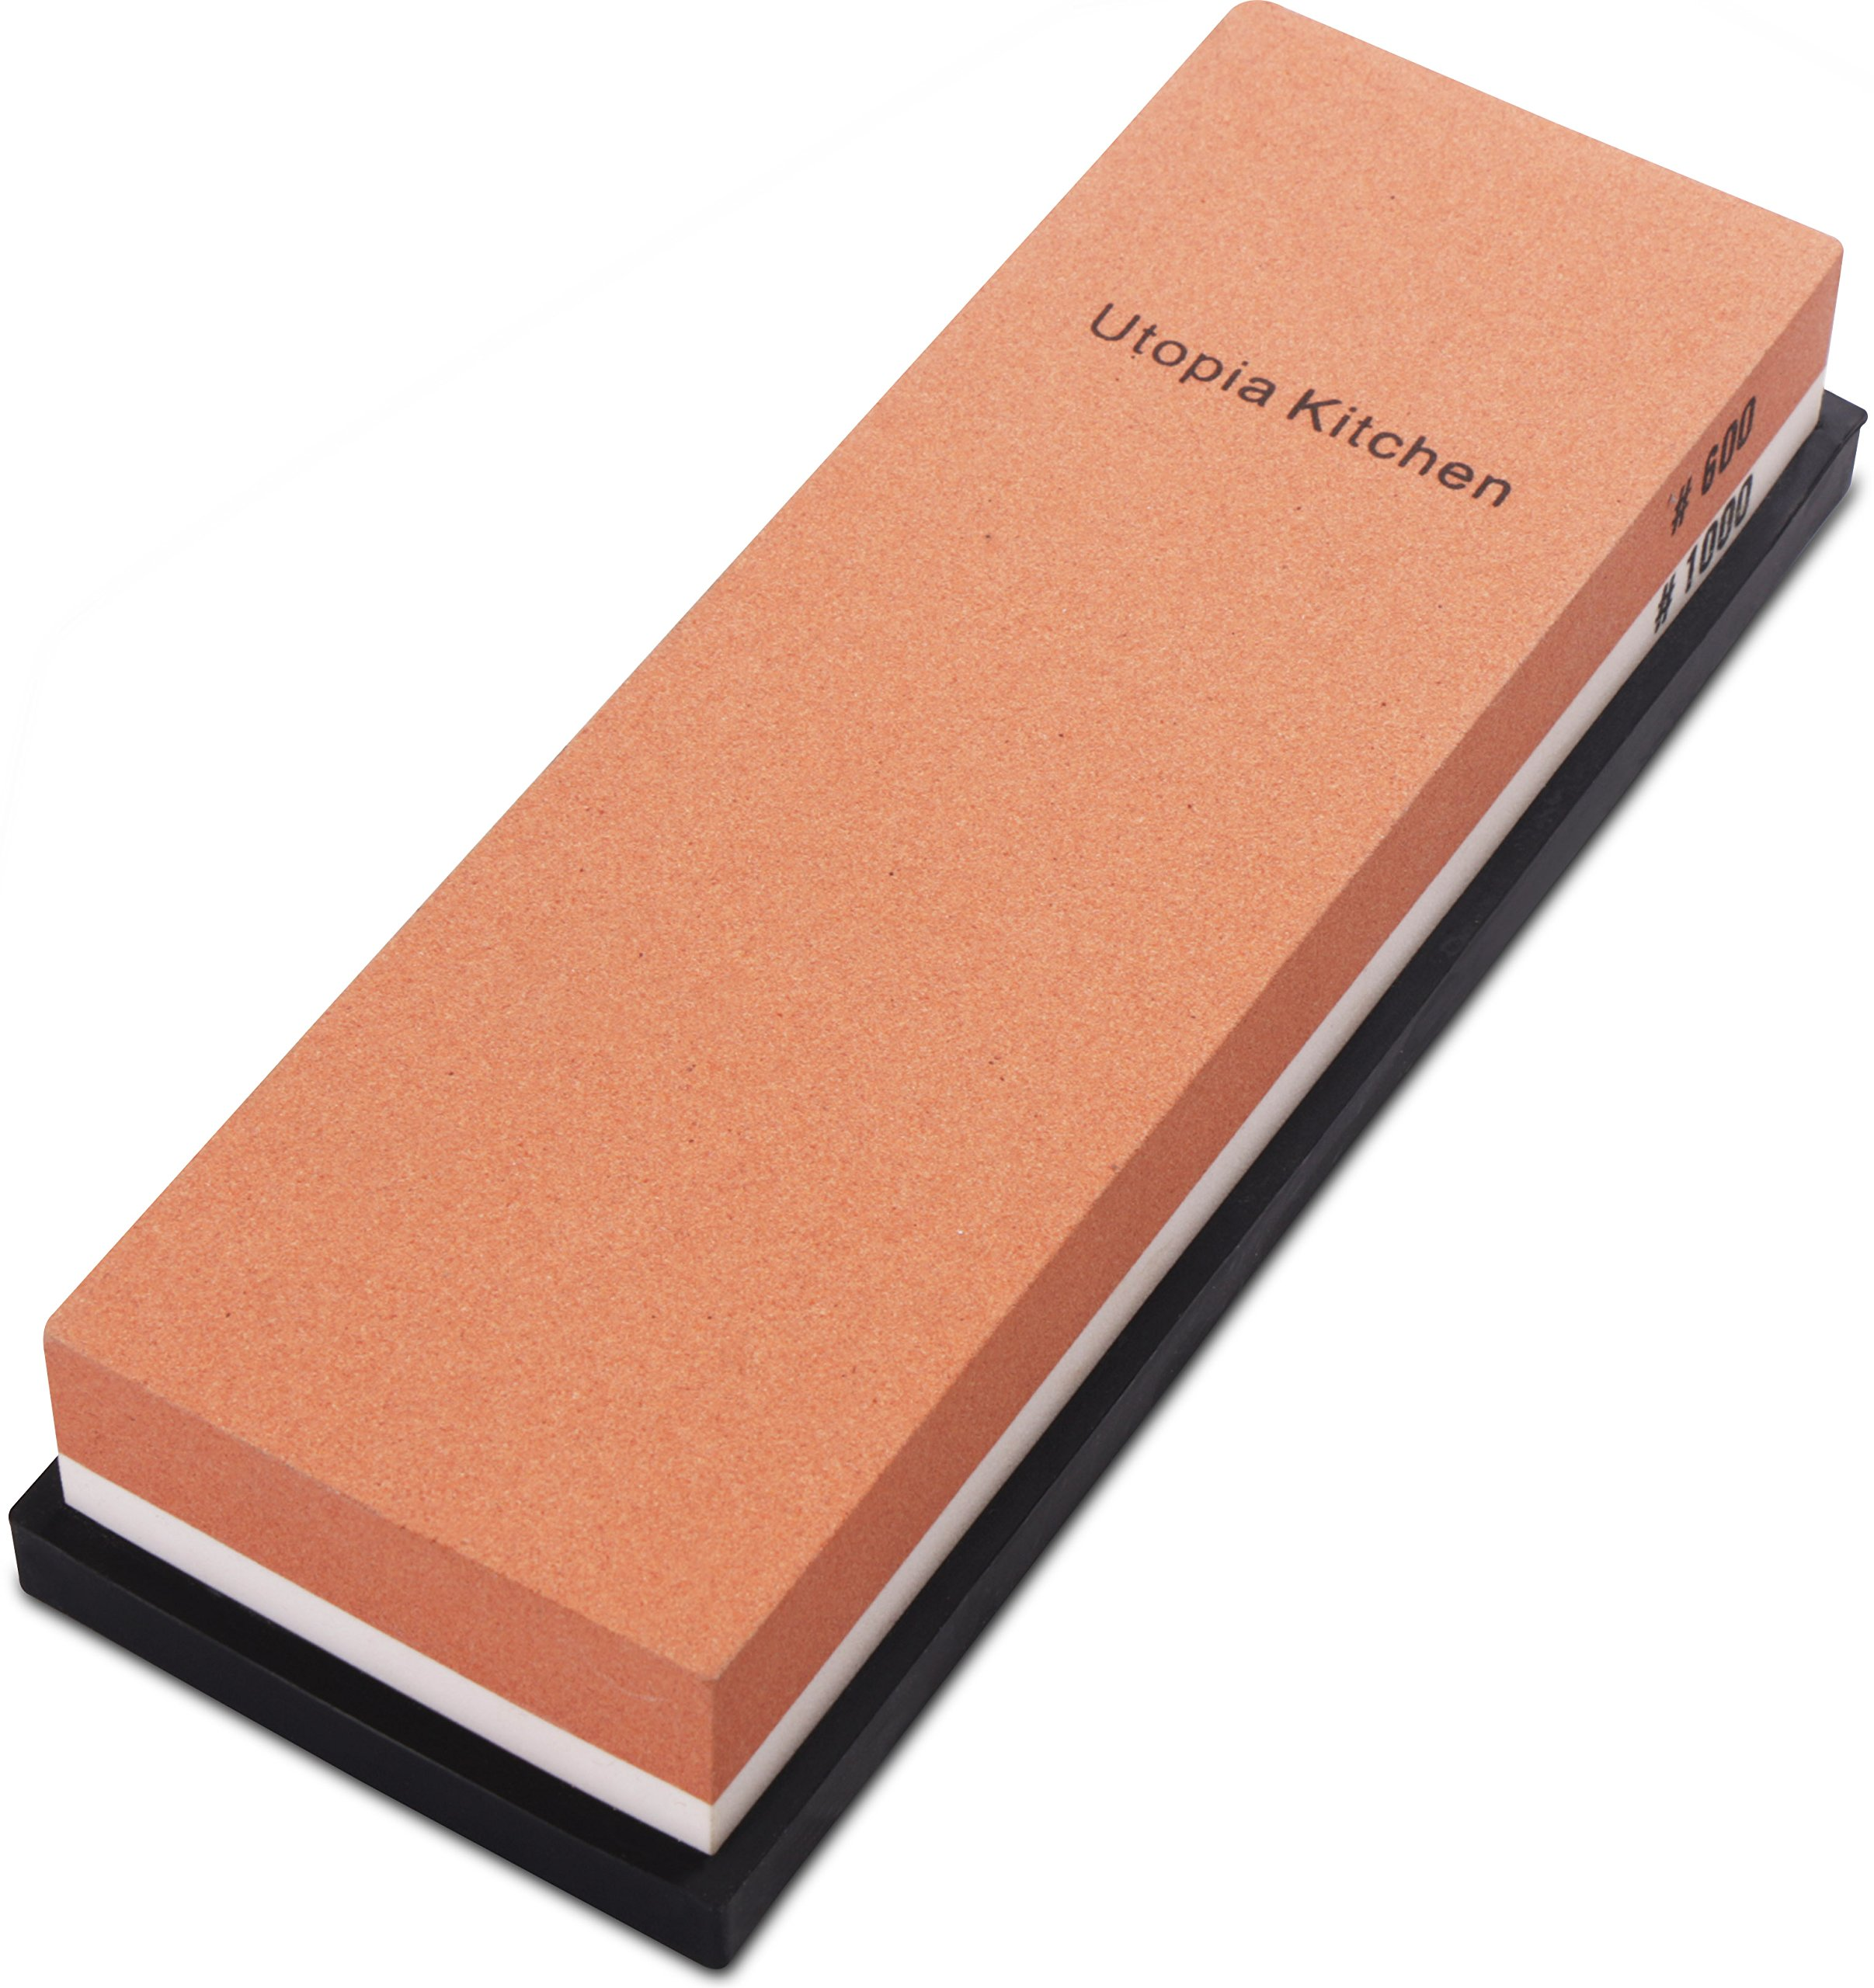 Utopia Kitchen Double-Sided Knife Sharpening Stone - Multi-Colored - 600/1000 Grit